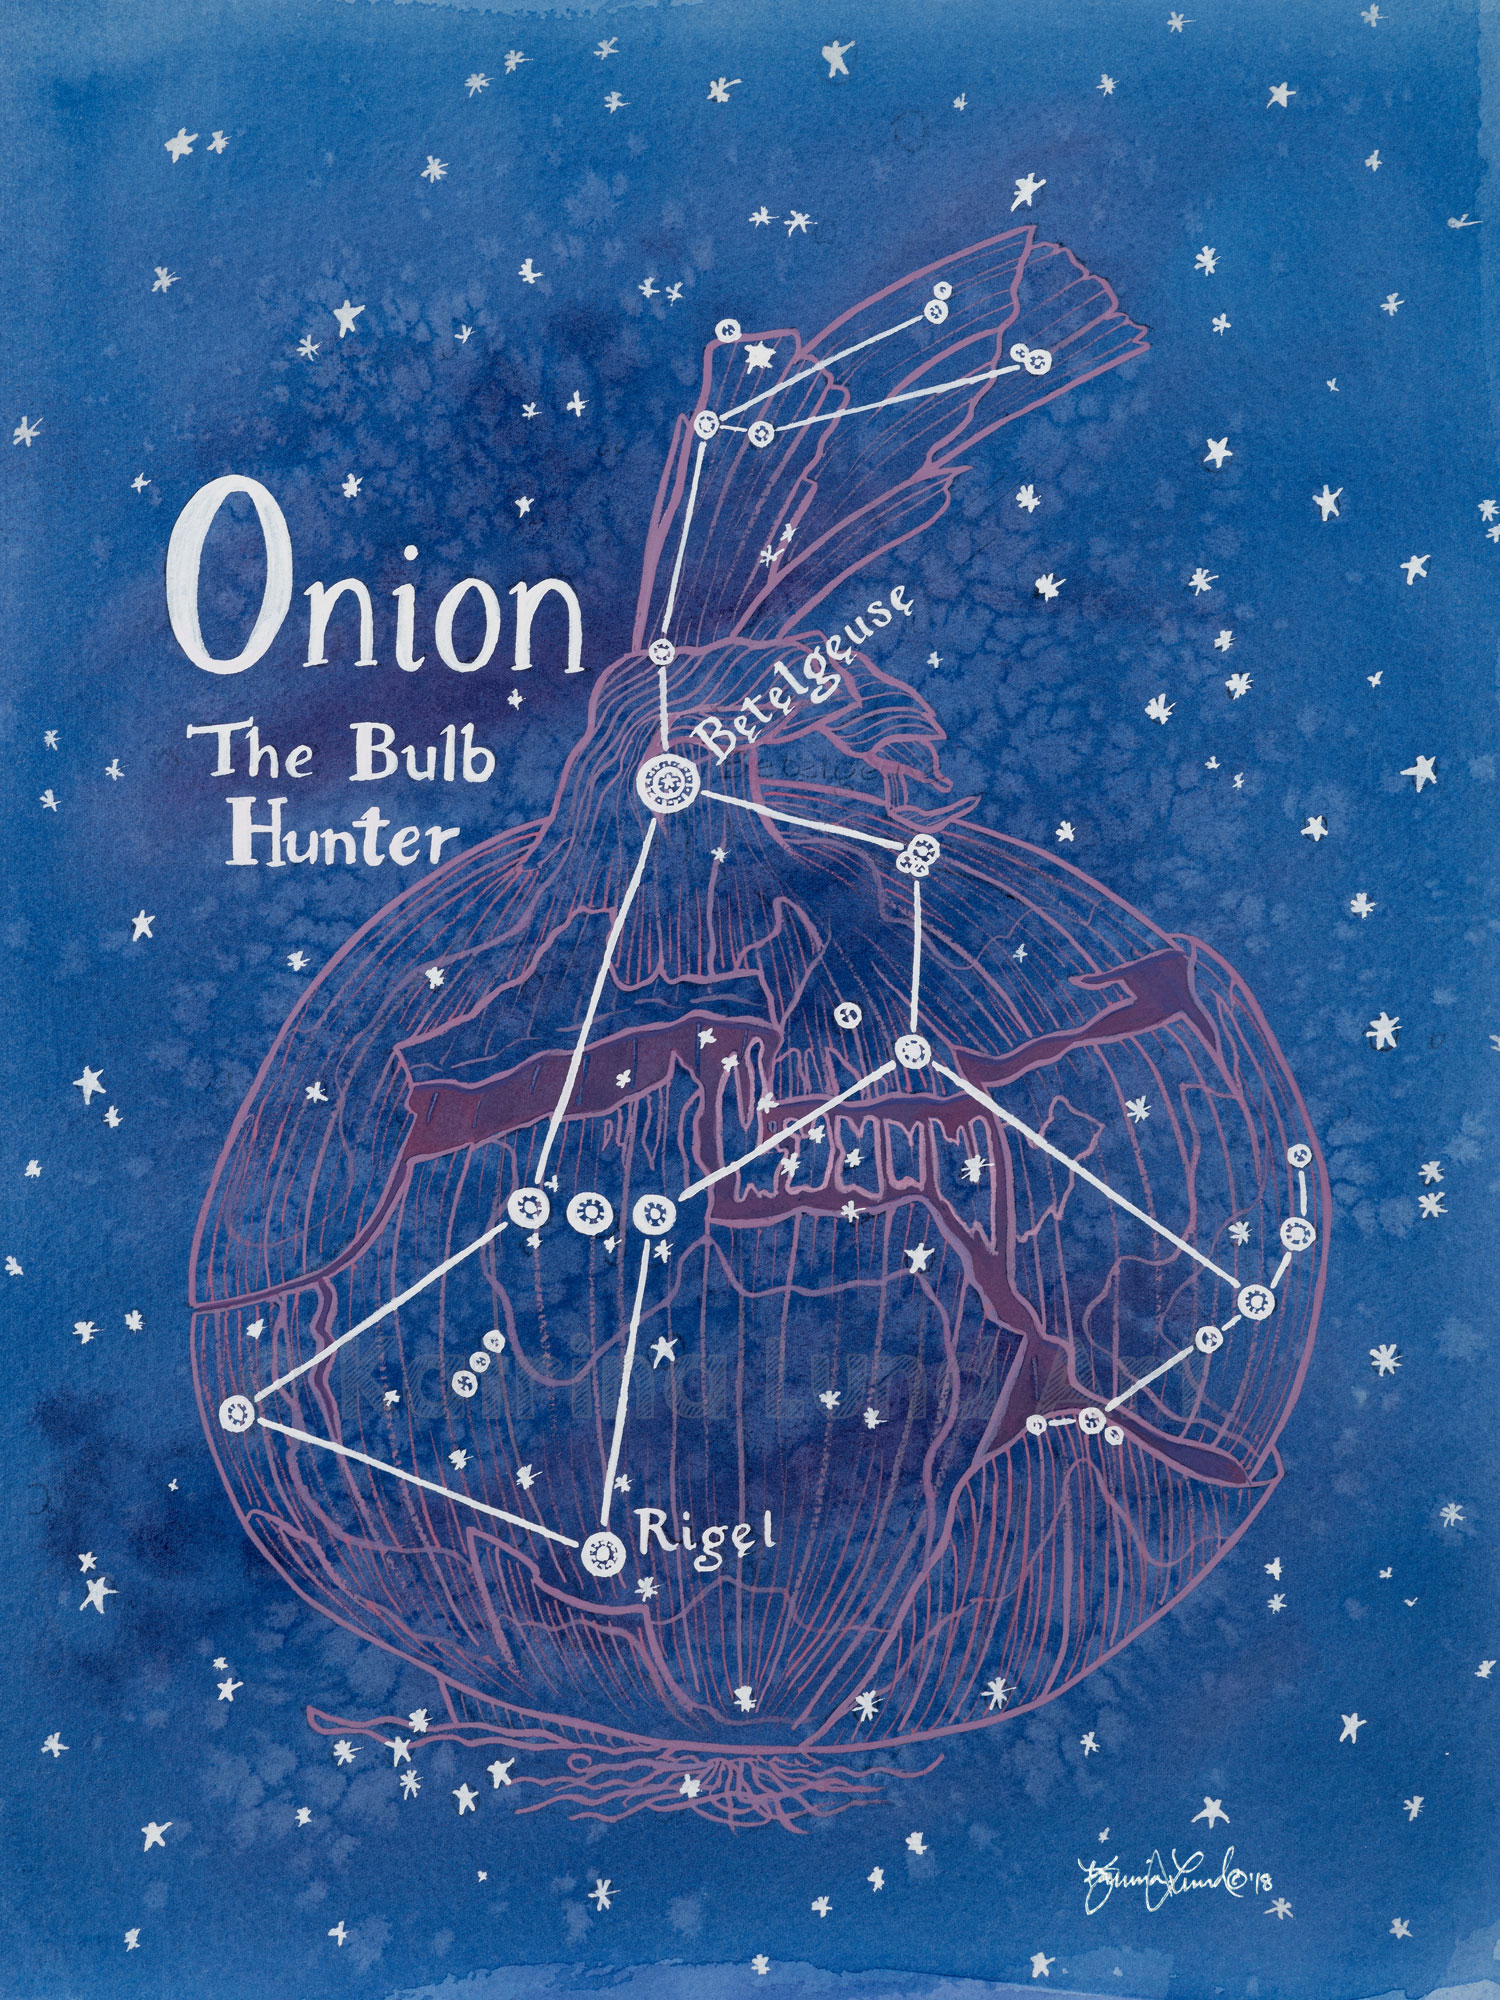 Onion by Night , watercolor & gouache.   Inspired by the constellation, Orion, the Hunter, a well-known and well-loved constellation.